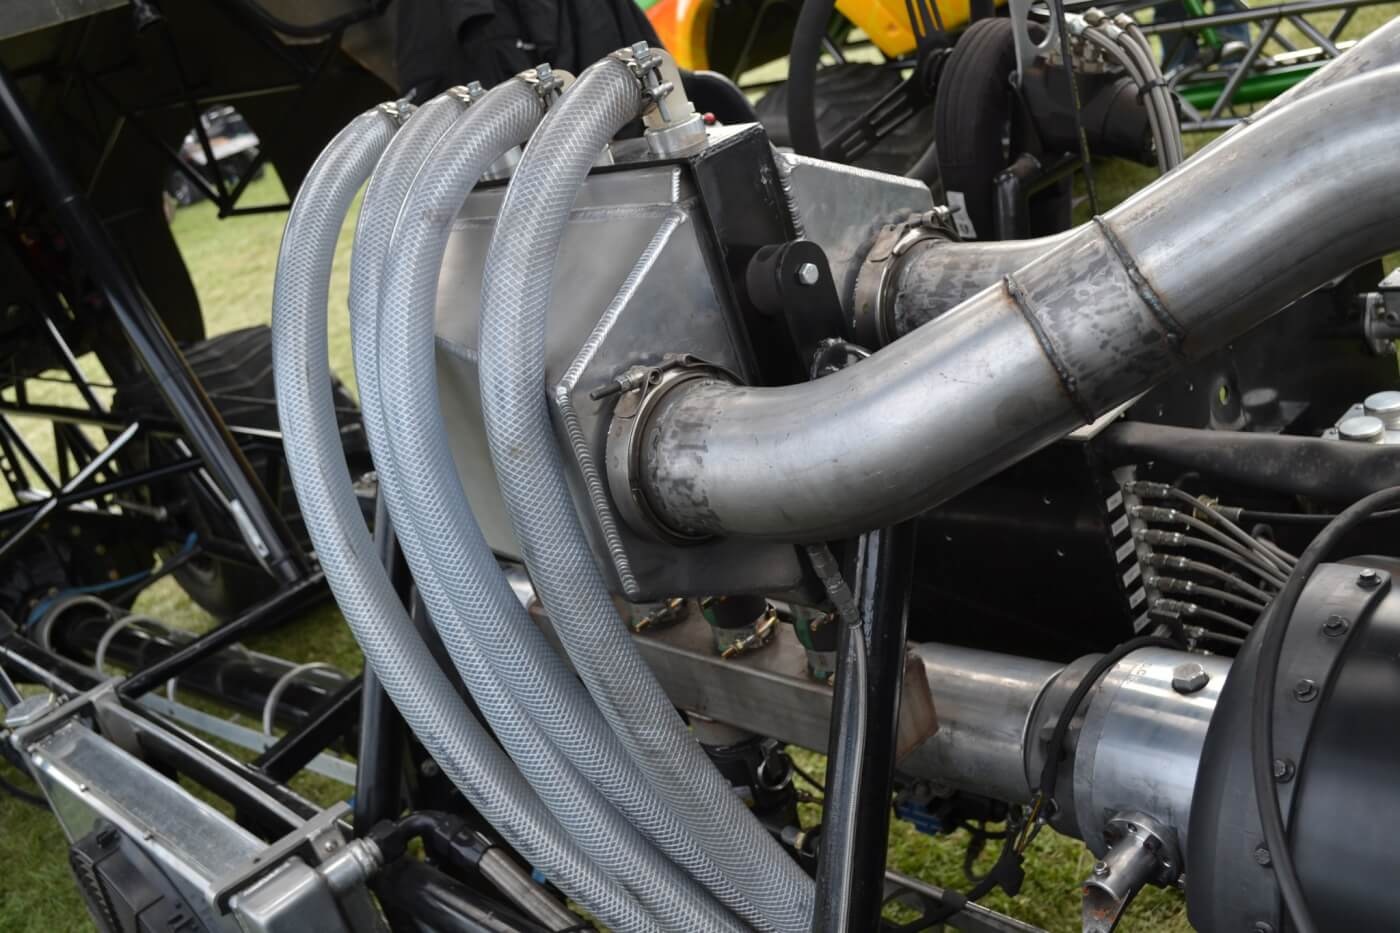 A heavily reinforced Precision air-to-water intercooler is used to control intake air temperatures down to slightly above ambient. The piping for the intercooler was built by Crank It Up Diesel, and the system consumes more than 80 lbs. of ice per pass.